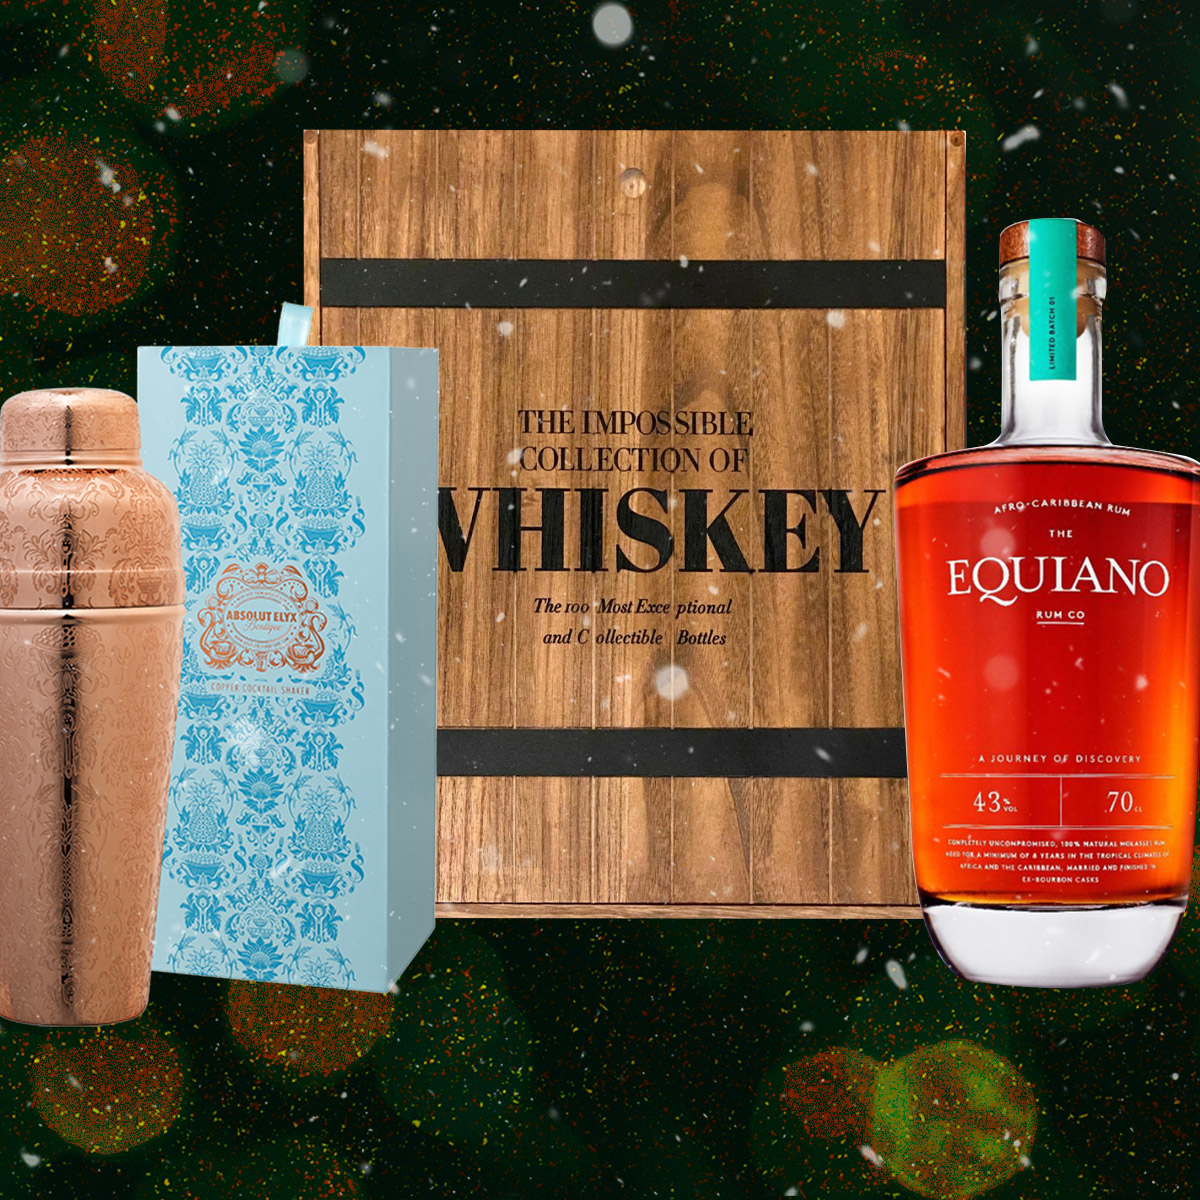 The 16 Best Boozy Gifts for the Serious Drinker